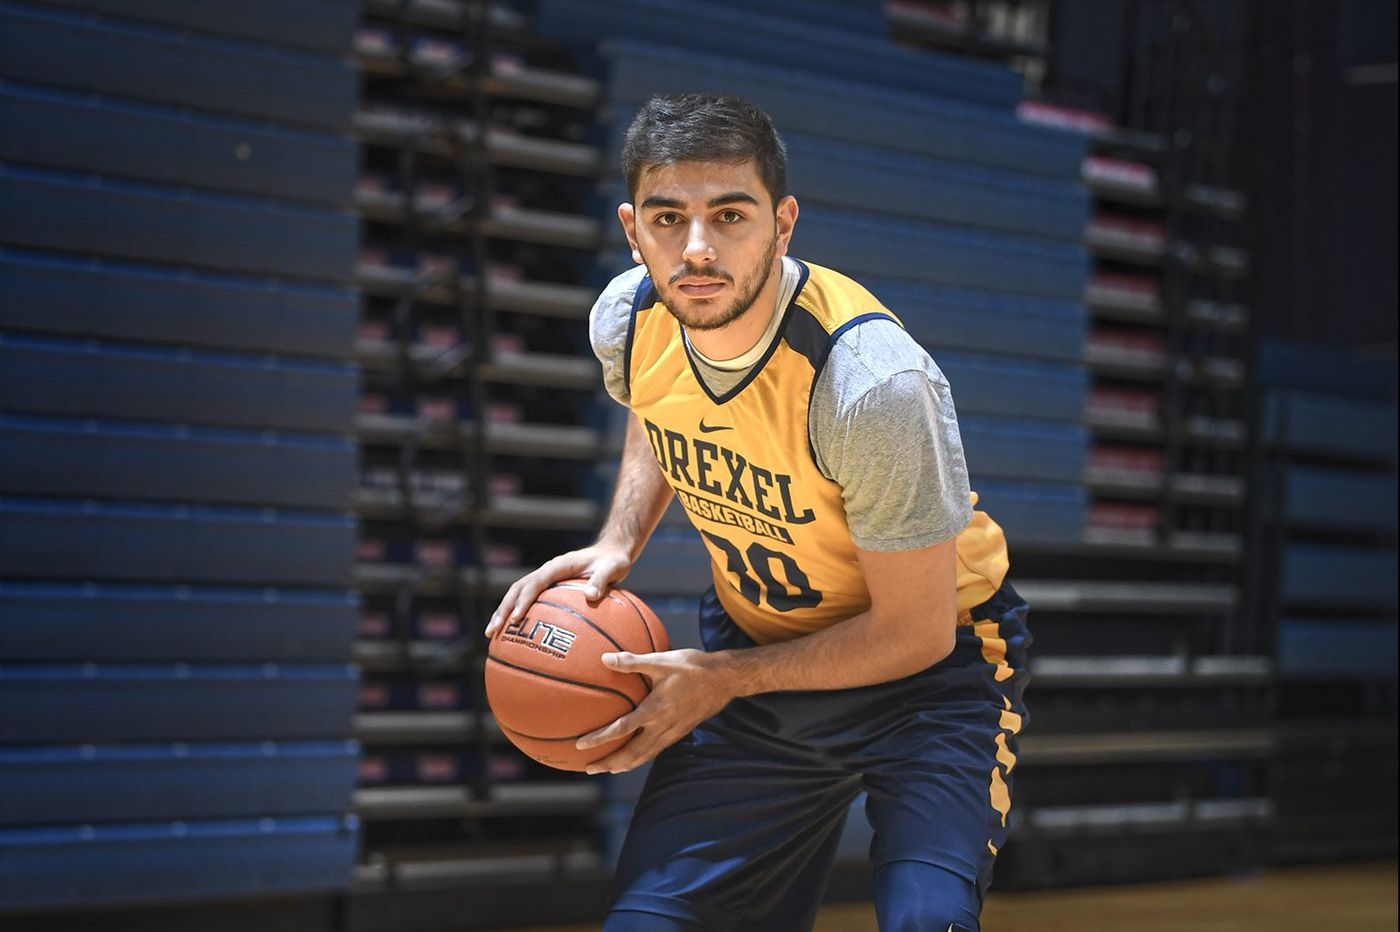 Turkey native Alihan Demir is feeling at home at Drexel and in Philadelphia | Season preview